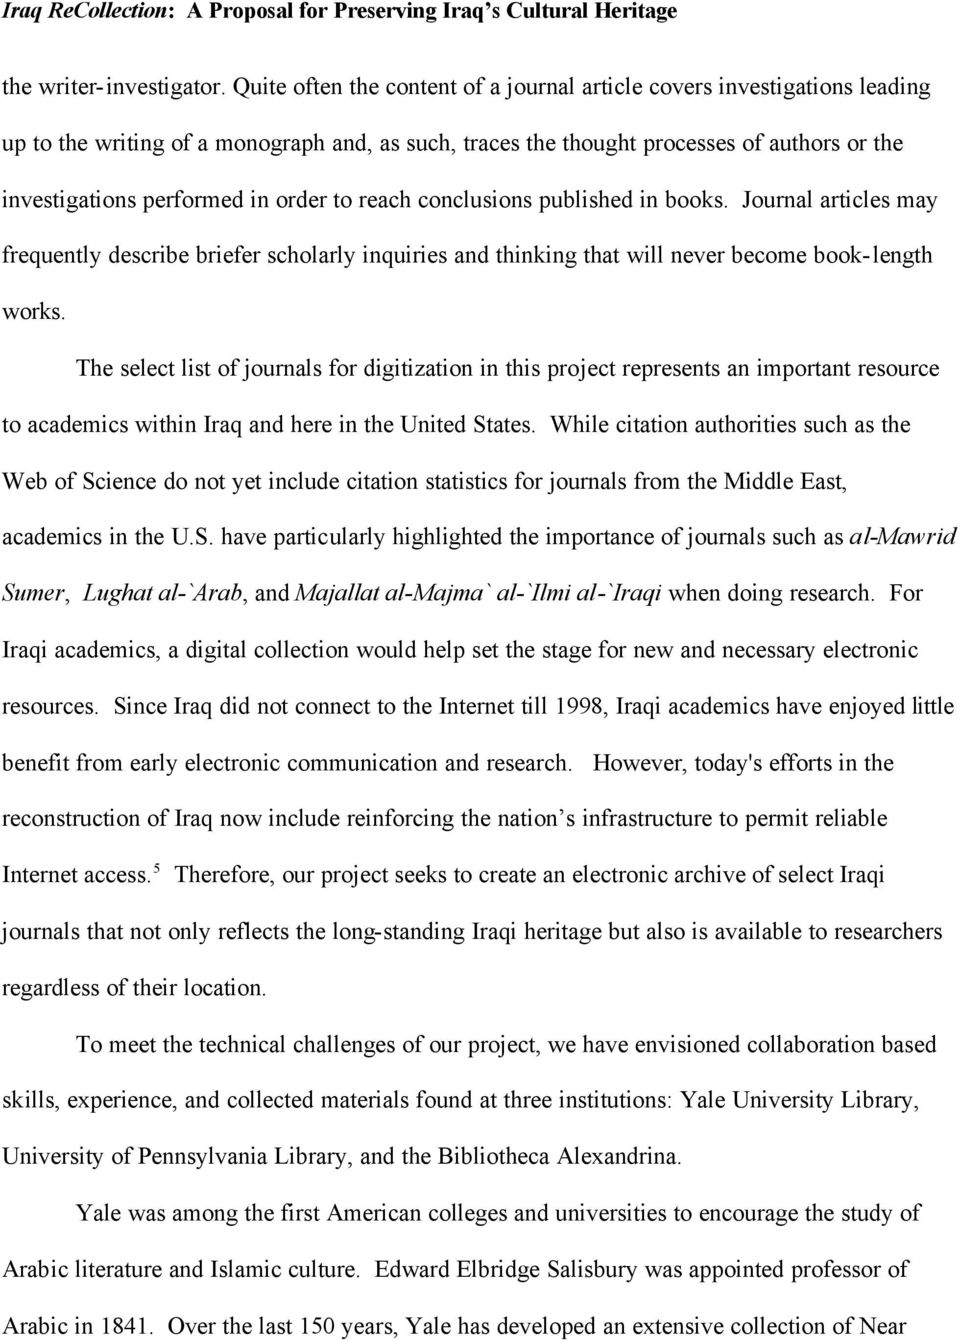 Iraq ReCollection: A Proposal for Recovering Iraq s Cultural